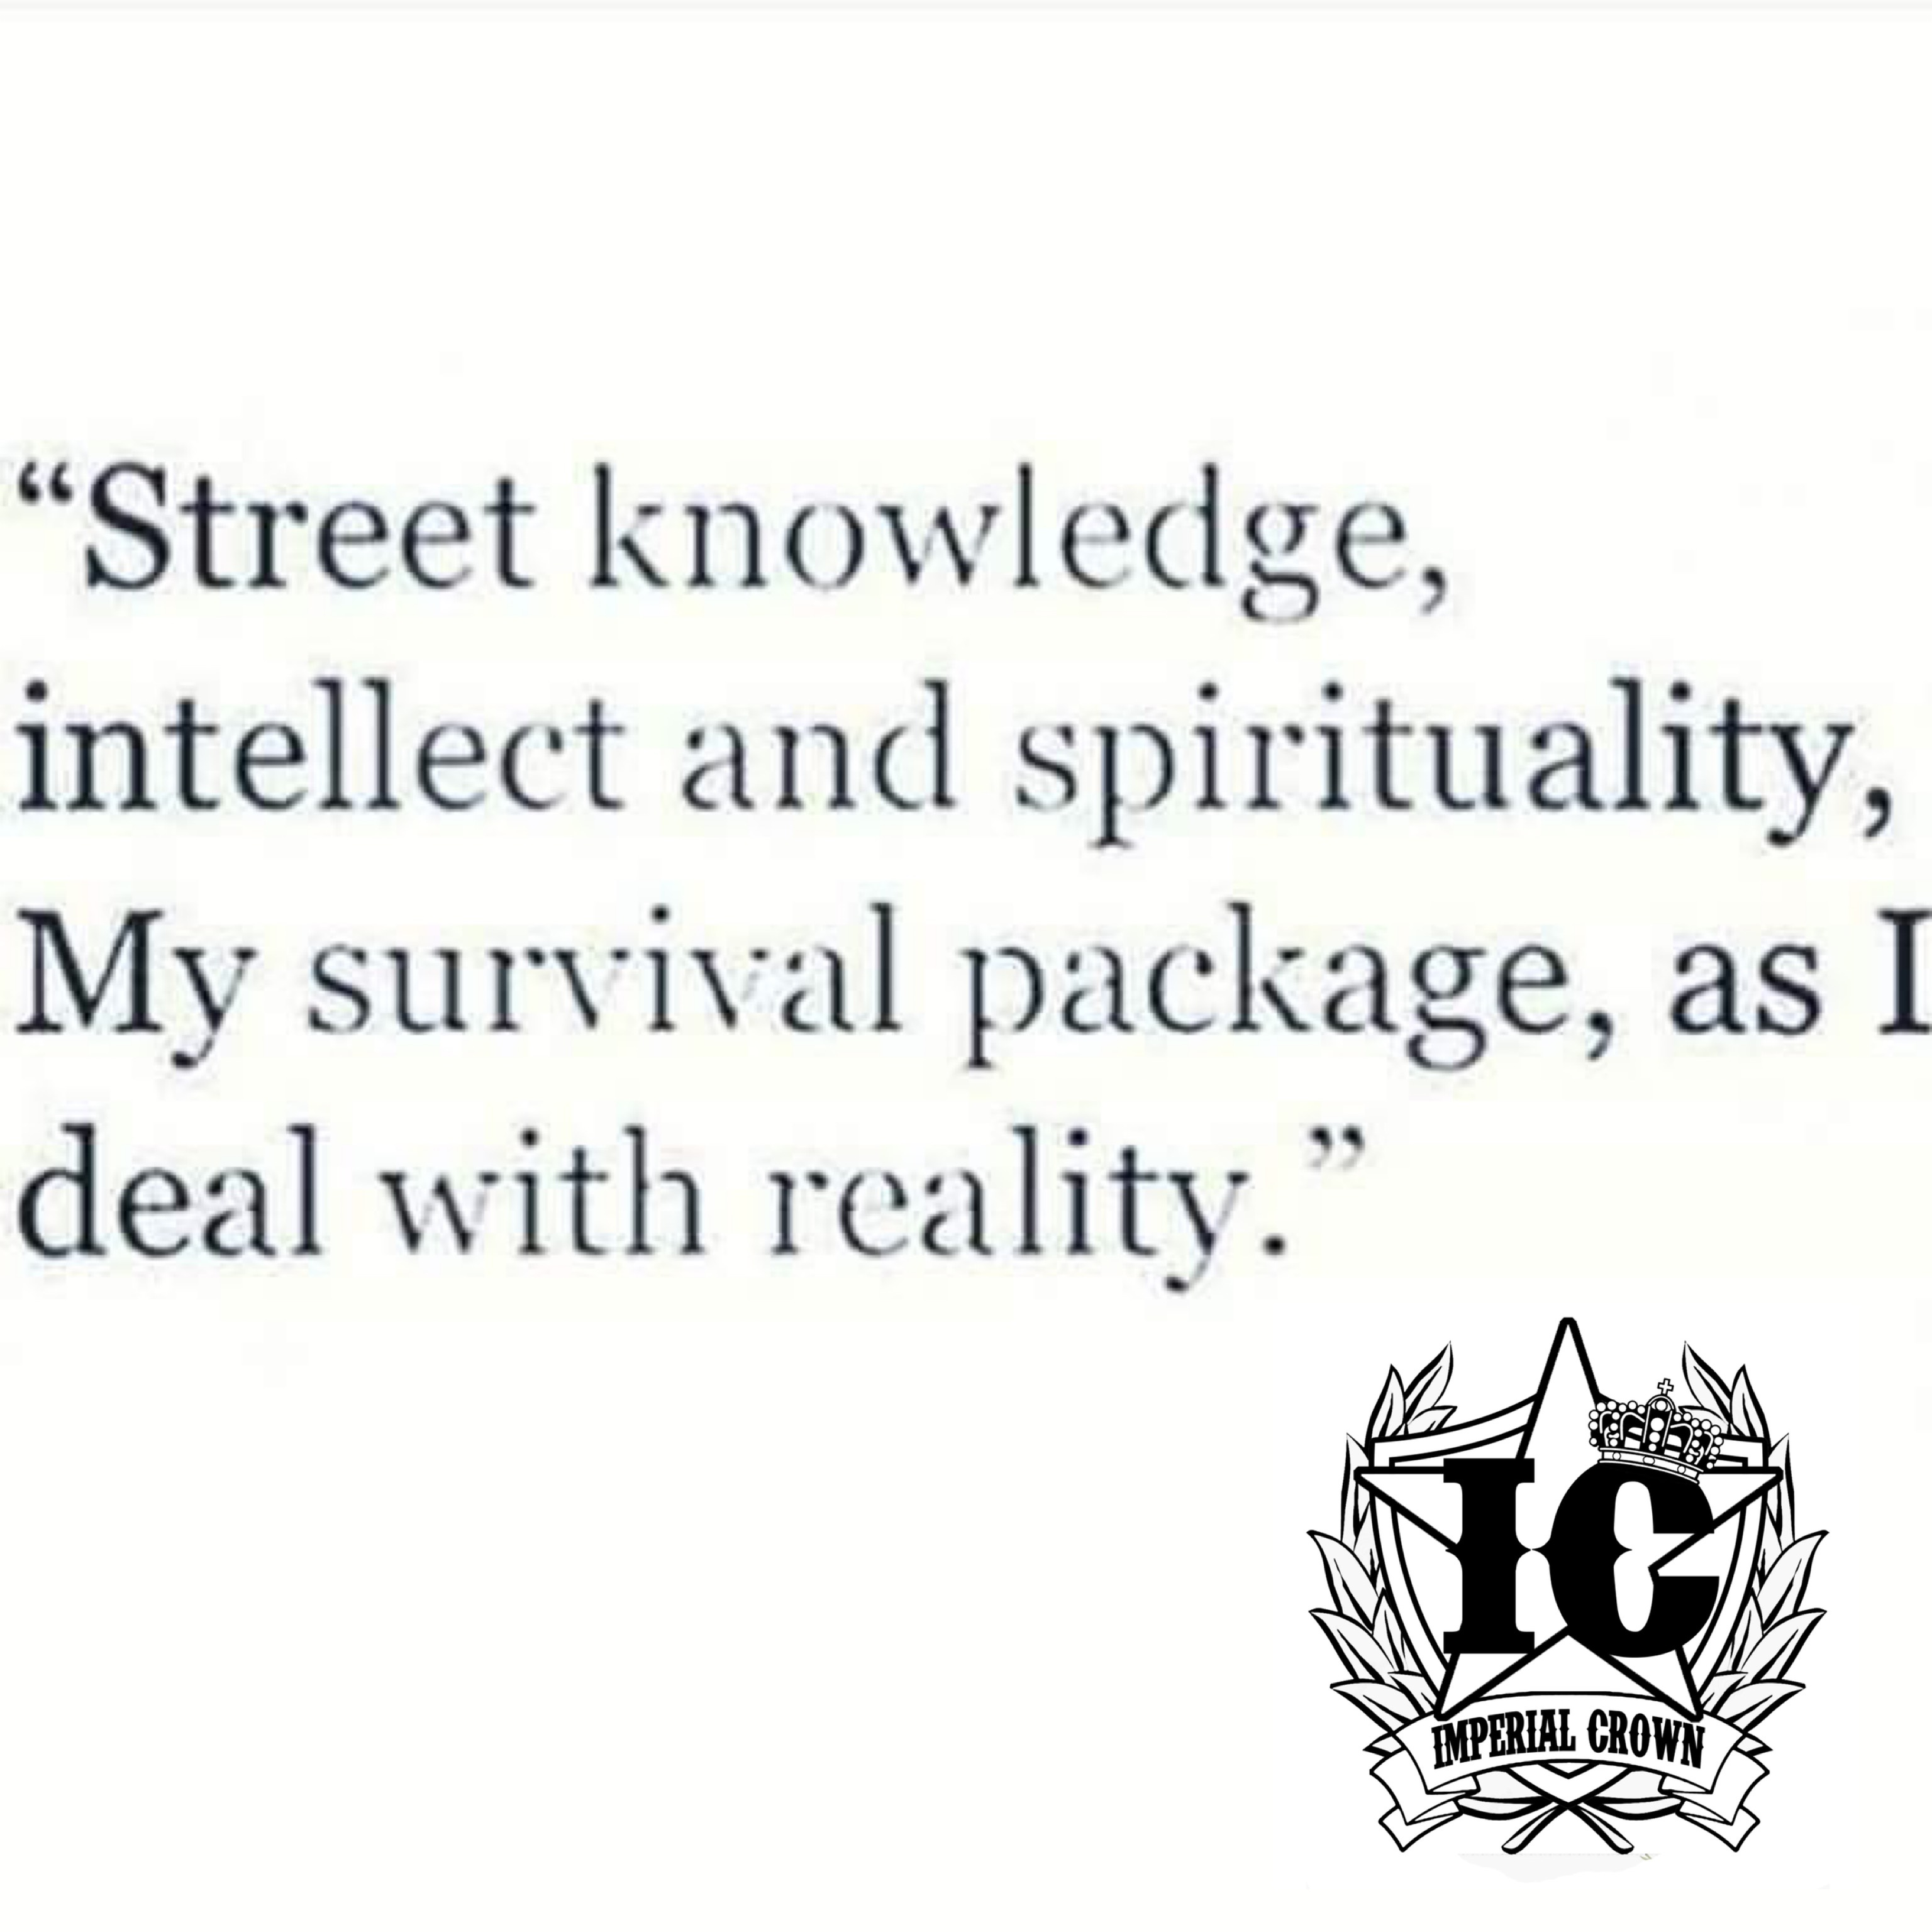 street knowledge intellect and spirituality